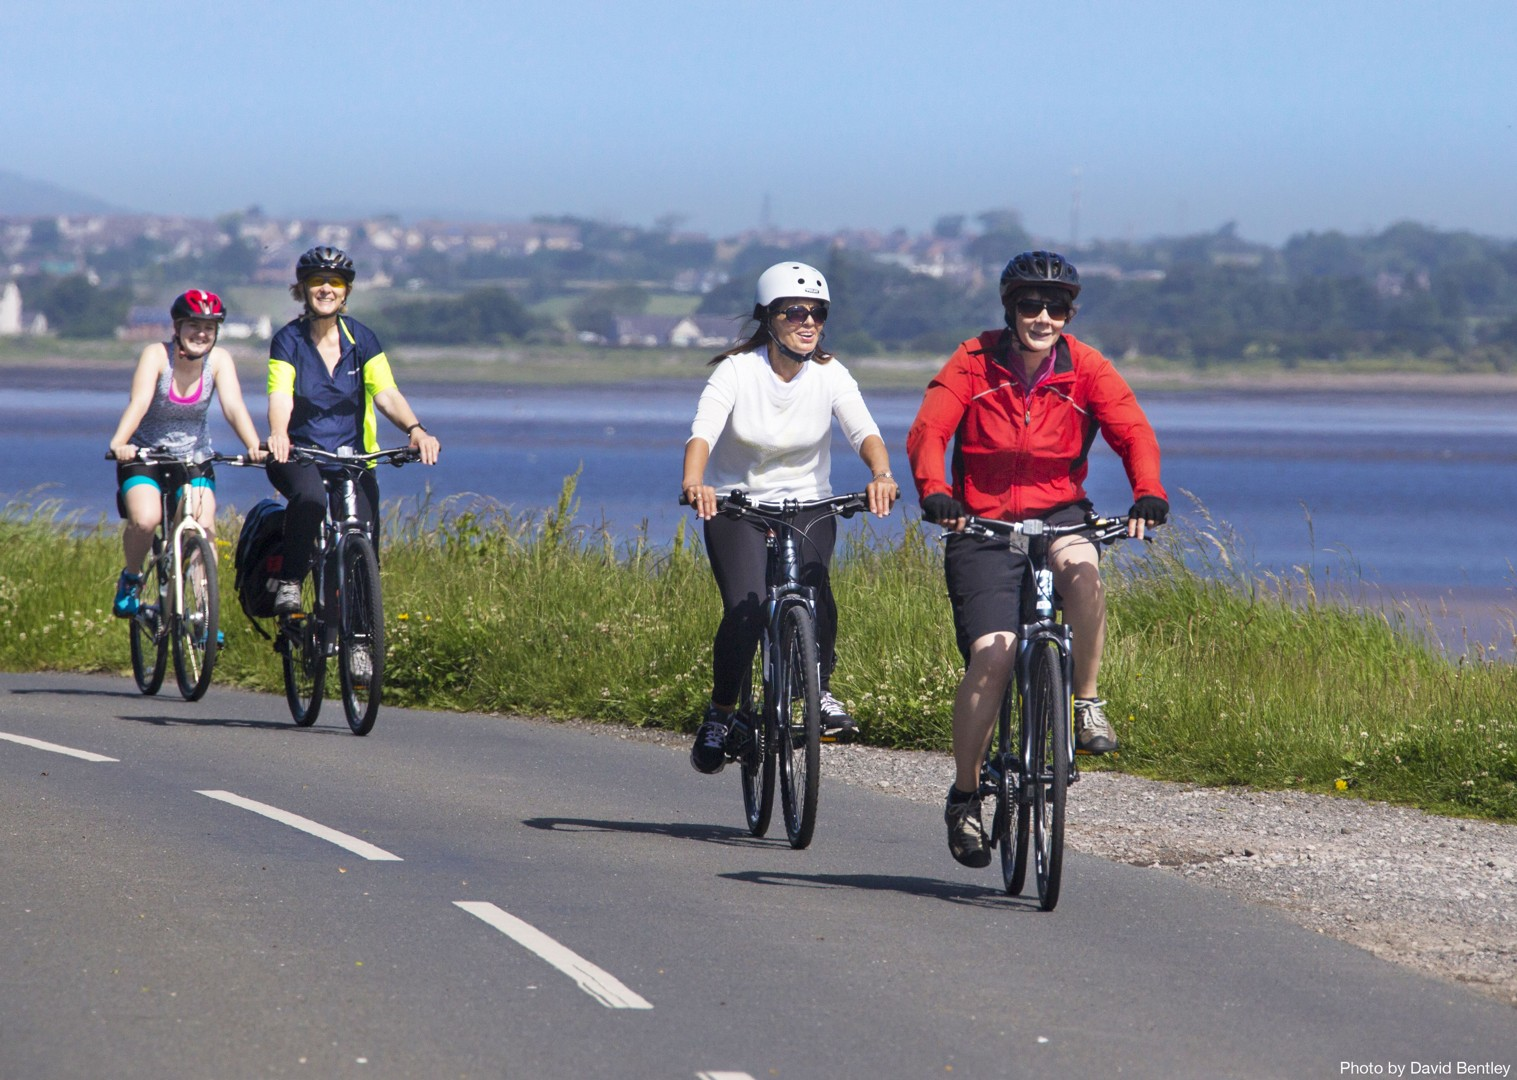 Hadrians-Cycleway-Sycamore-Gap-Supported-Leisure-Cycling-Holiday.jpg - UK - Hadrian's Cycleway - Supported Leisure Cycling Holiday - Leisure Cycling